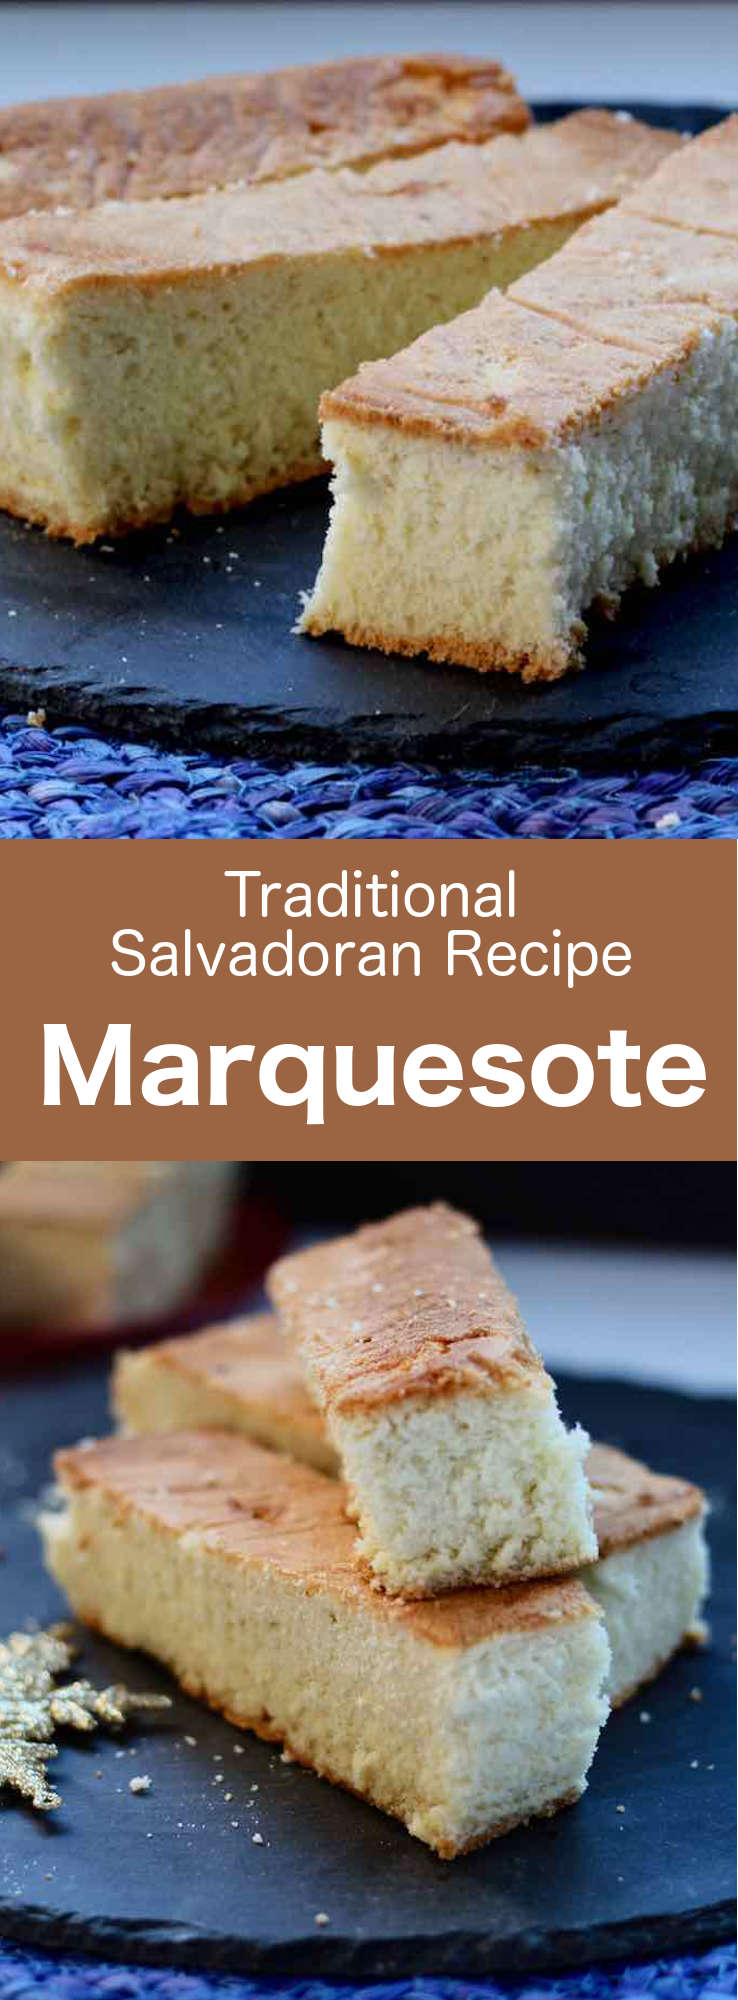 Marquesote is a delicious cake akin to a traditional Genoese sponge cake, typical of El Salvador, but also Mexico and Honduras. #CentralAmericanCuisine #CentralAmericanRecipe #SalvadoranCuisine #SalvadoranRecipe #WorldCuisine #196flavors